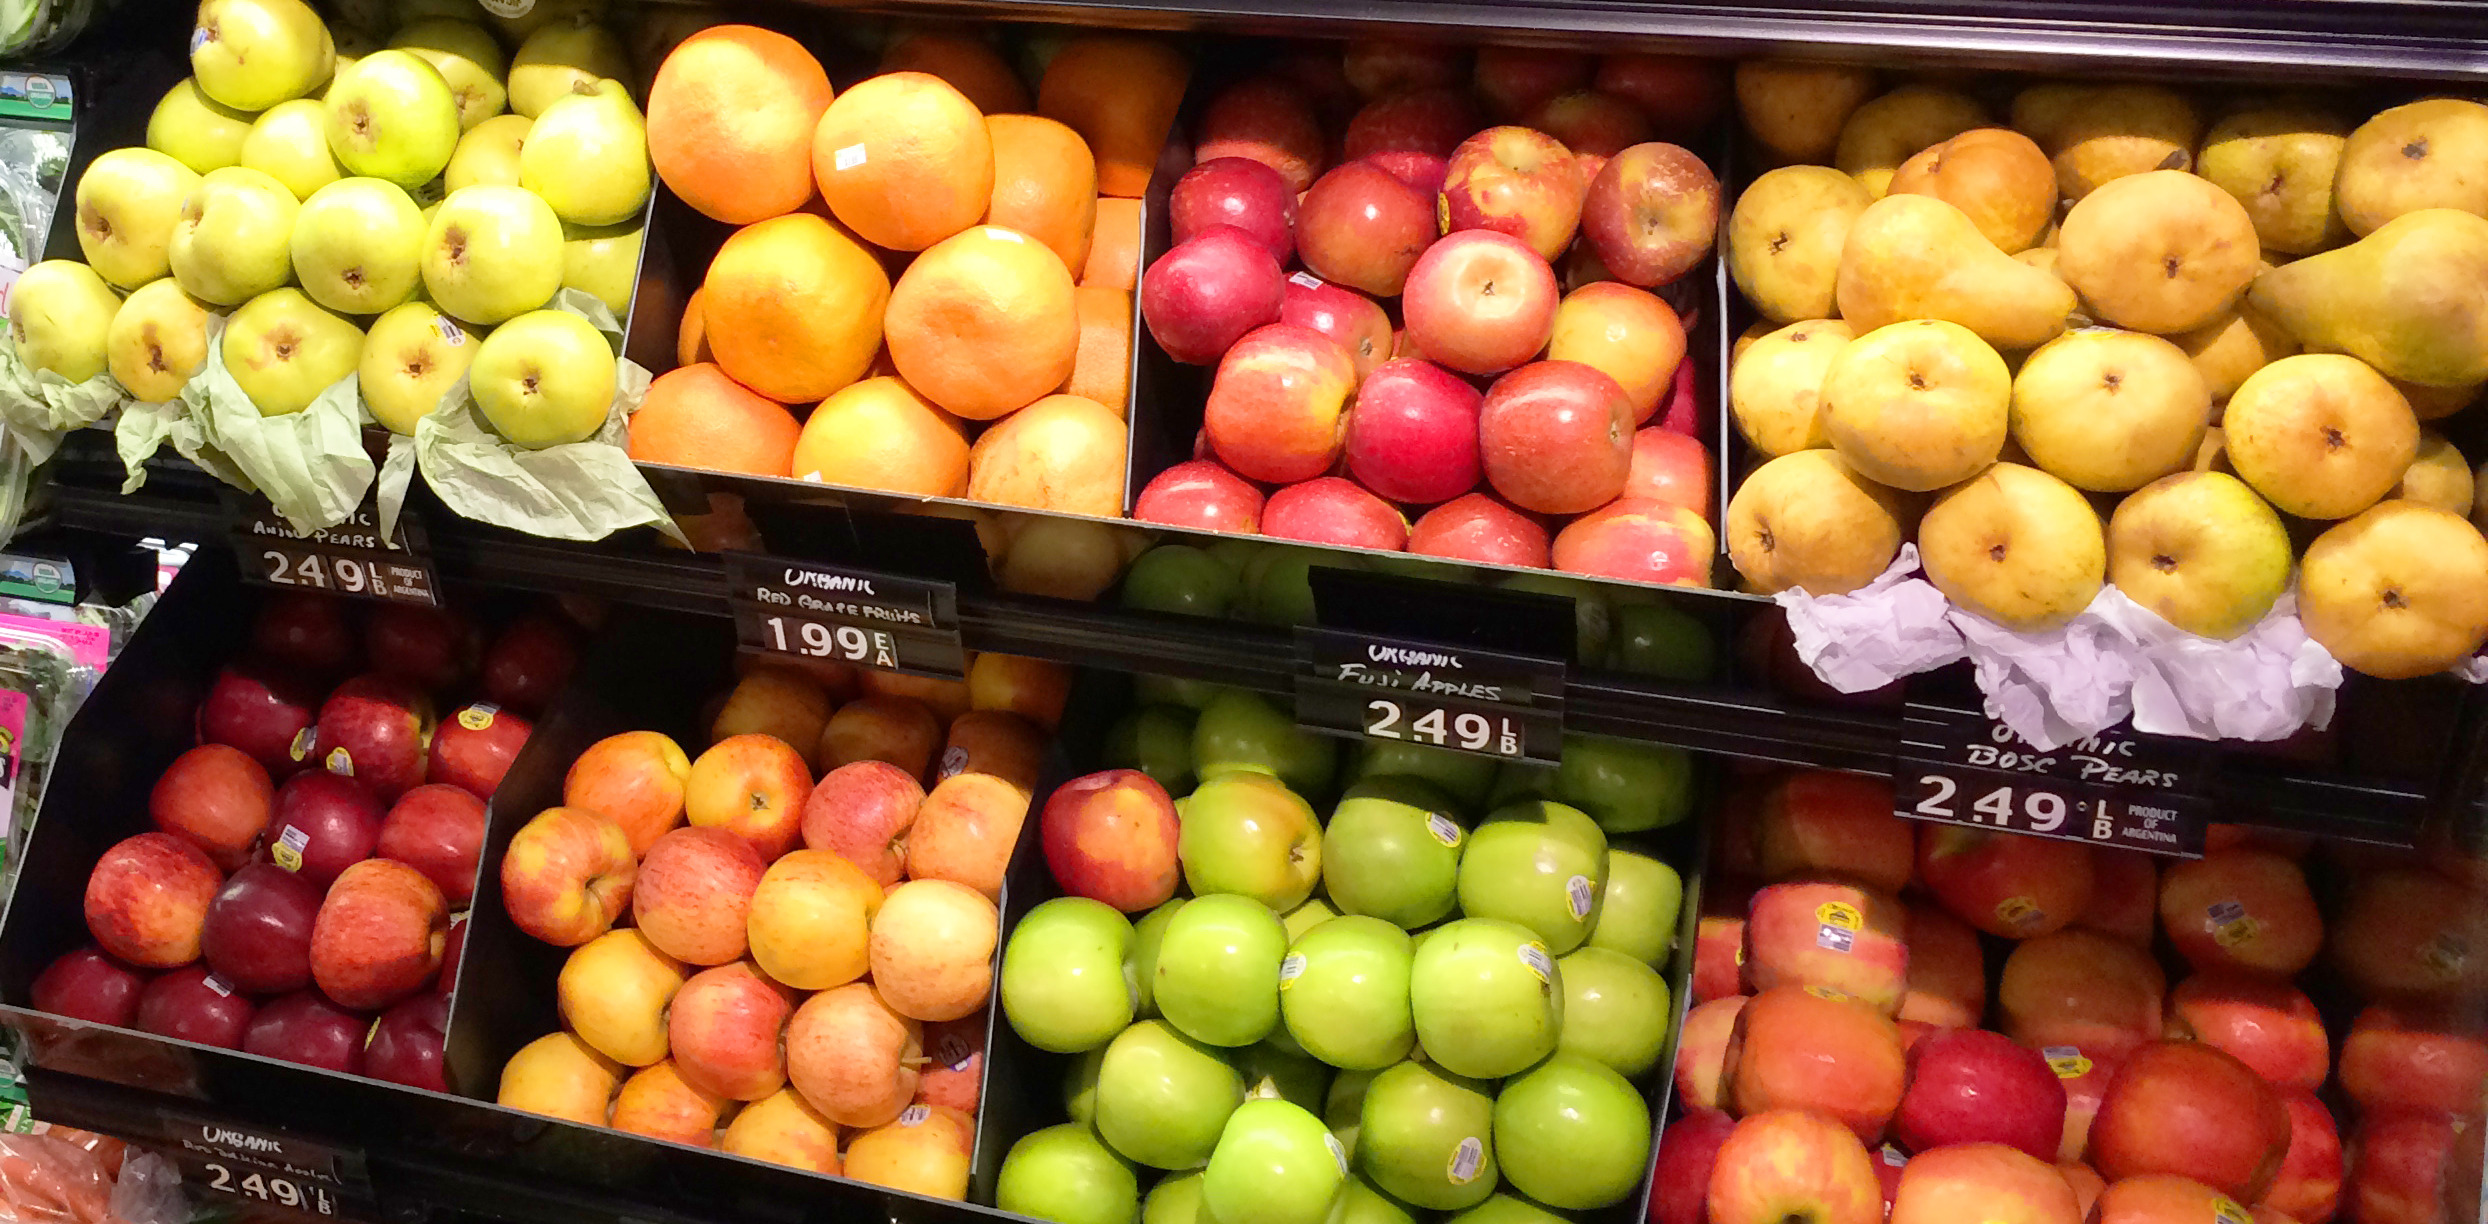 b0be6f8923b2d0da2925_10_Our_fruit_selection_is_inspected_constantly_for_freshness.jpg